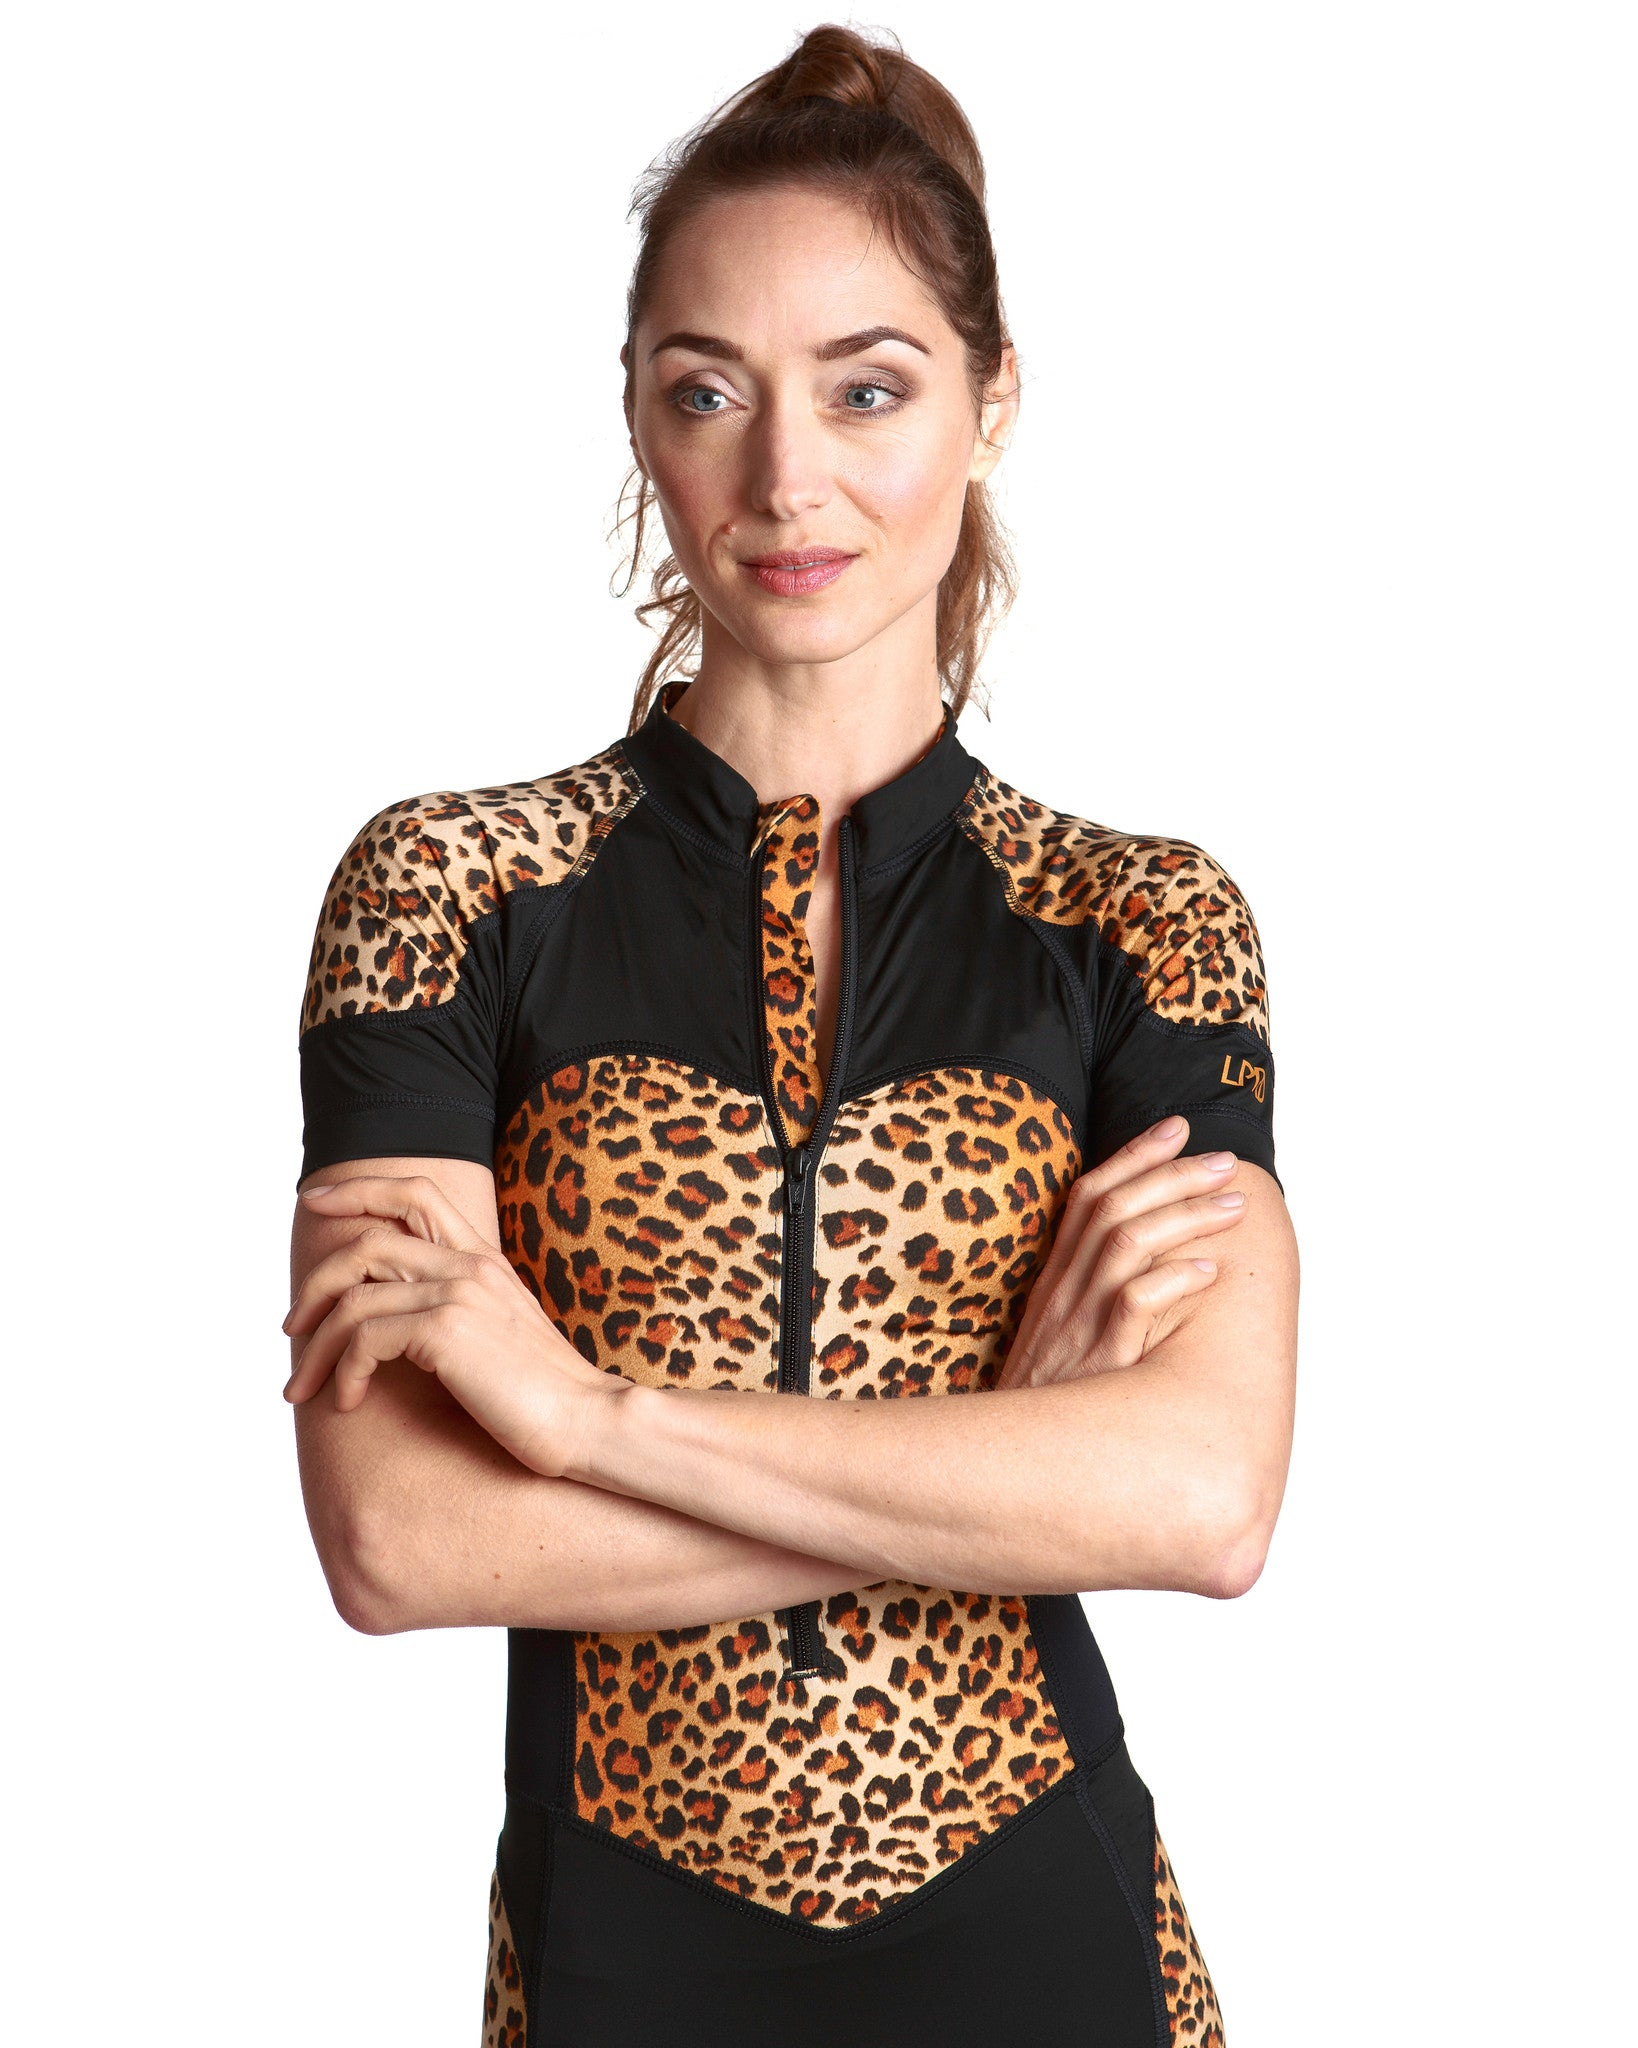 LPRD Leopard Centre Cycling Skinsuit | Close-up Front View Detail Leopard Print Zipper Garage